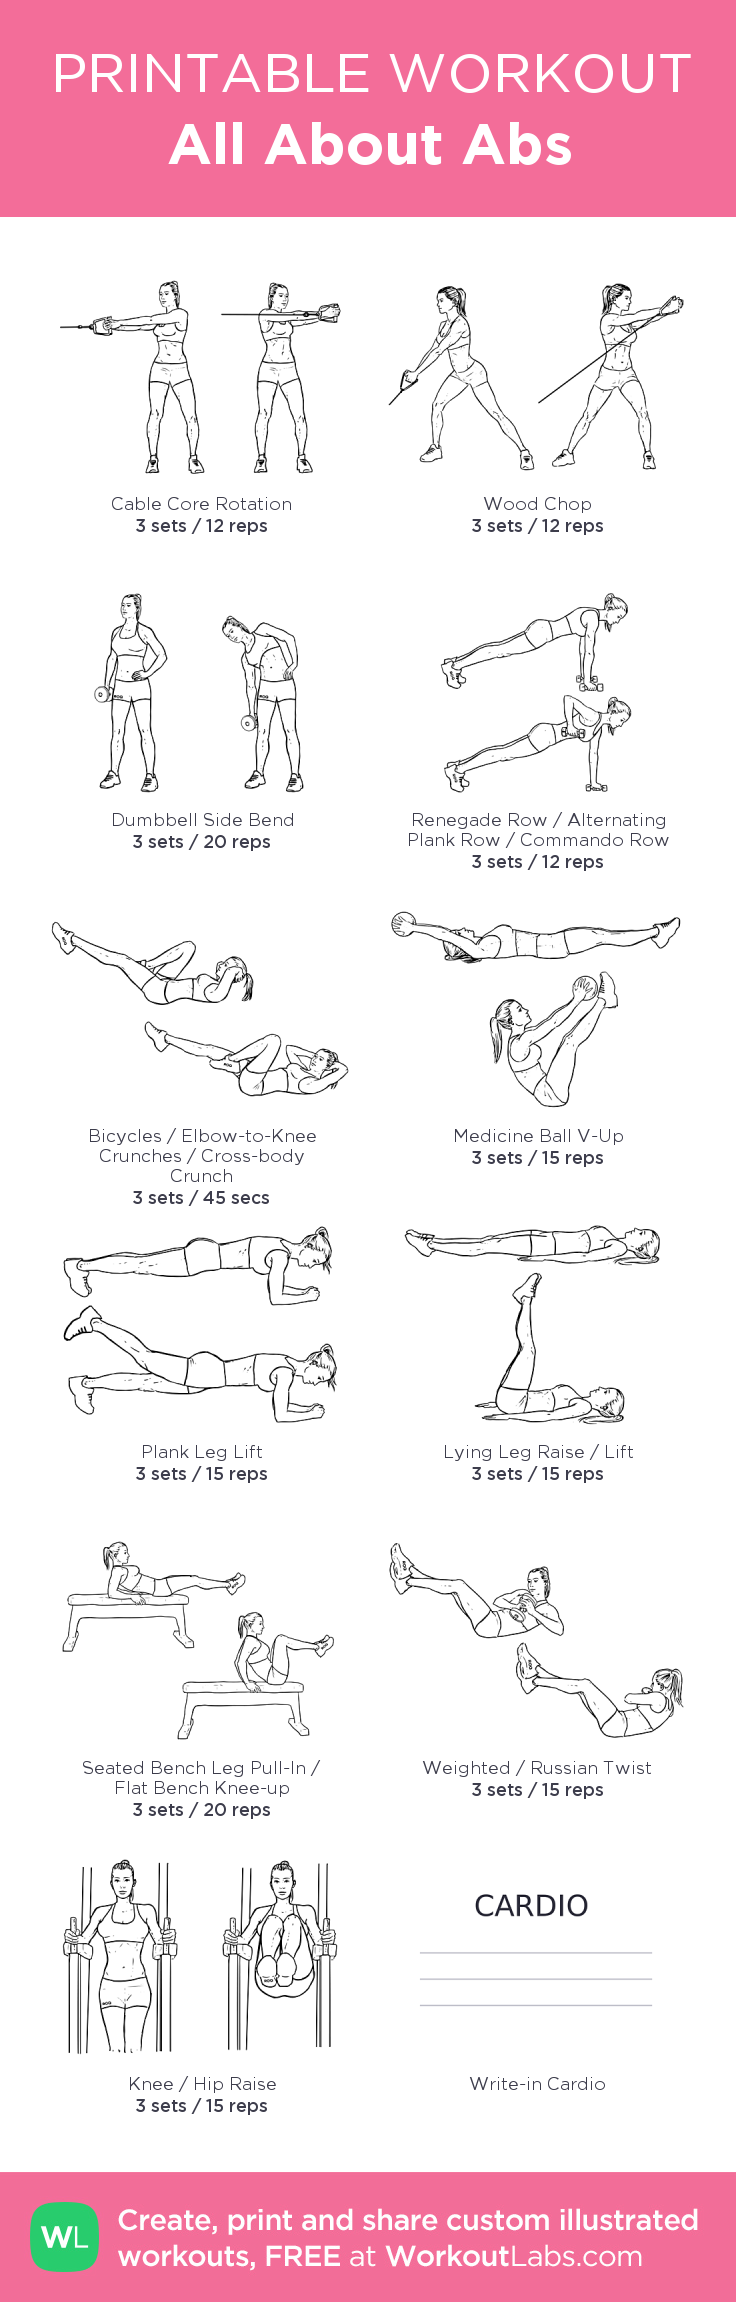 All About Abs –my custom workout created at WorkoutLabs.com • Click through to download as printable PDF! #customworkout